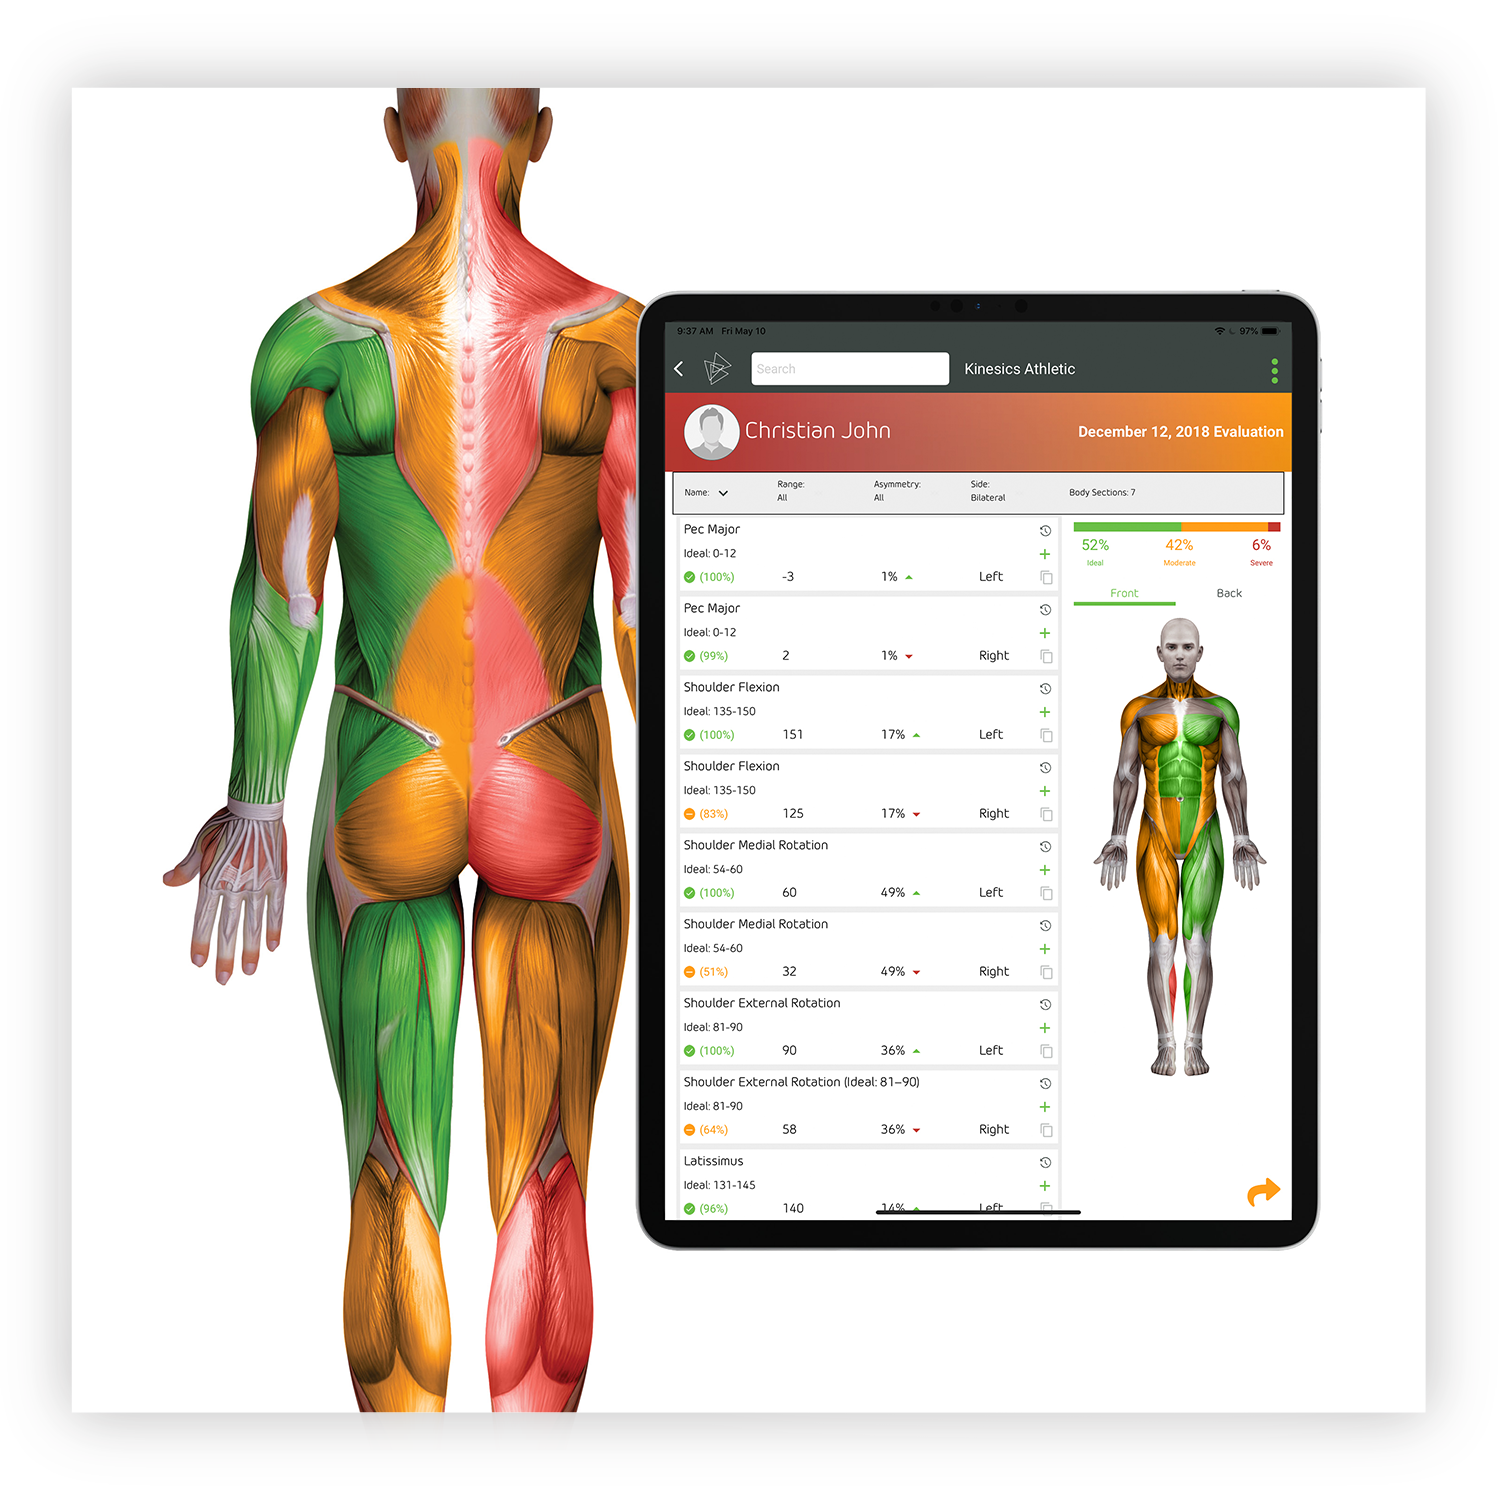 Results - Generate results in 1-click. Kinesics App Results Report provides a multi-level view of musculoskeletal health for the overall body, per body segment, and per measurement.Get a full picture of the musculoskeletal system's muscle balance, alignment, and symmetry in 1-click. Reports feature a color-coded body avatar, each measurement's percent of ideal, the percent of asymmetry from right to left, and the overall percent of ideal for the whole body. Re-evaluate and compare results over time to monitor progress—it's that simple.